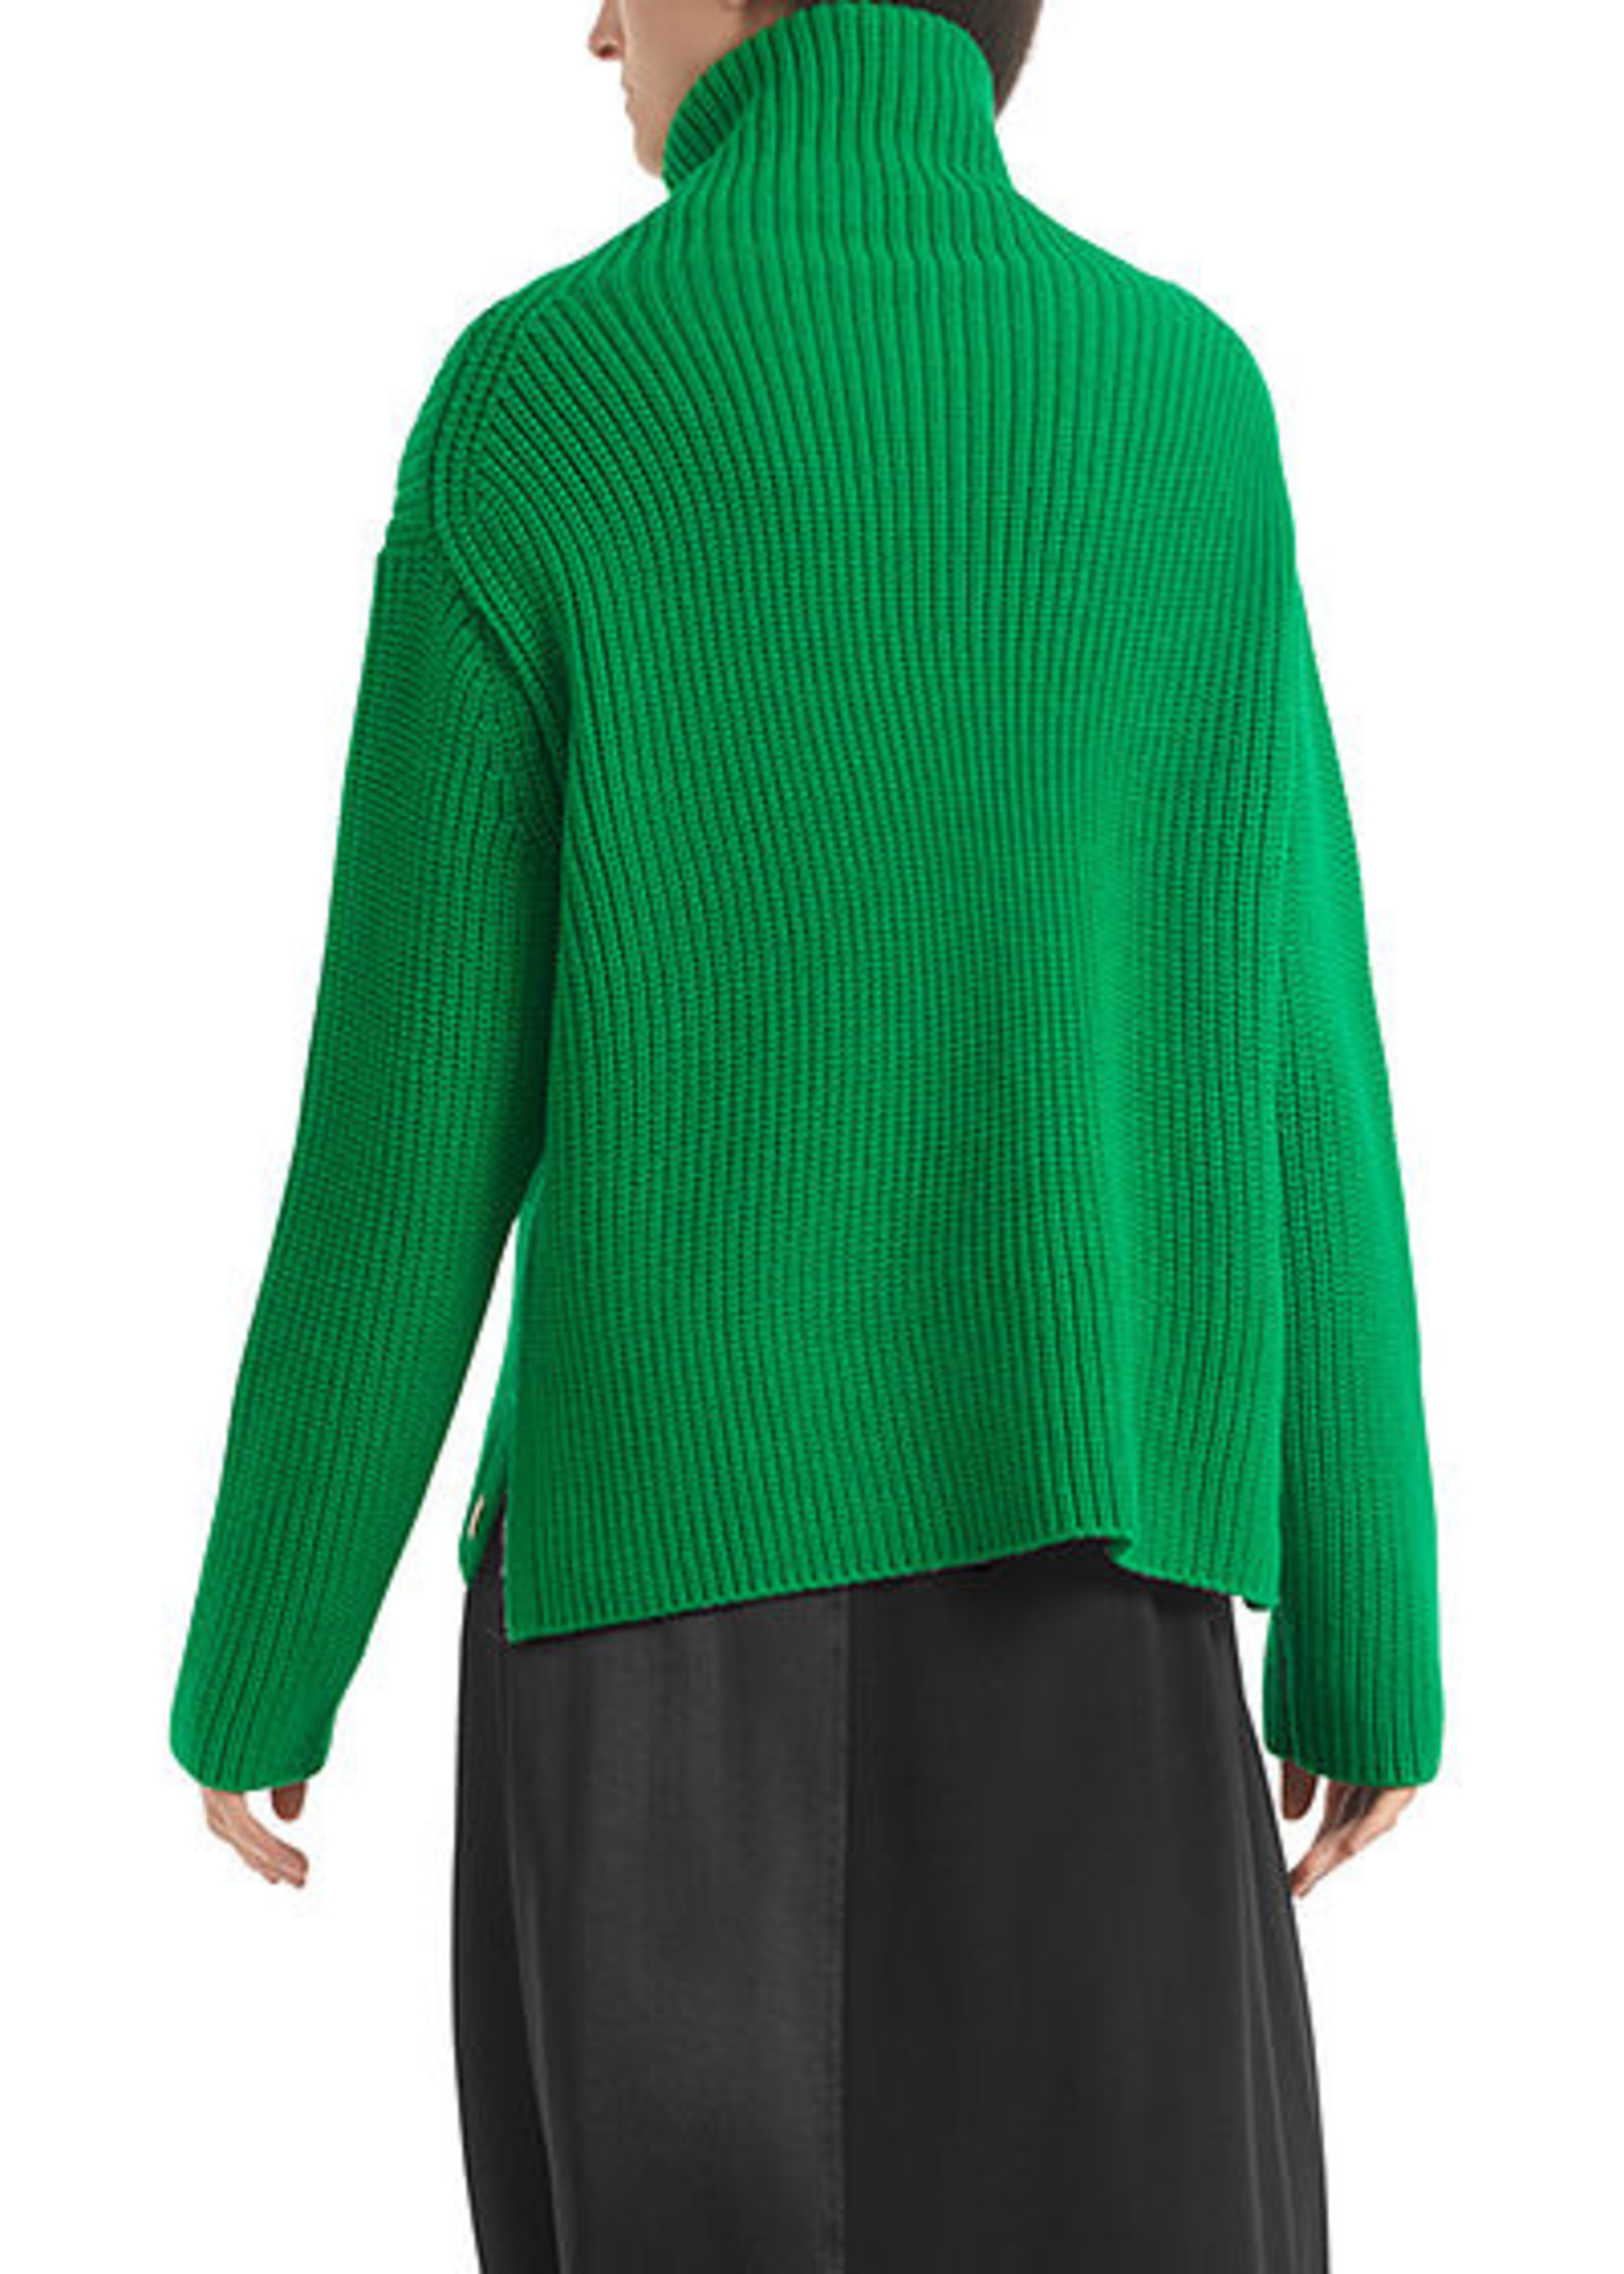 Marccain Sports Sweater RS 41.23 M18 new emerald